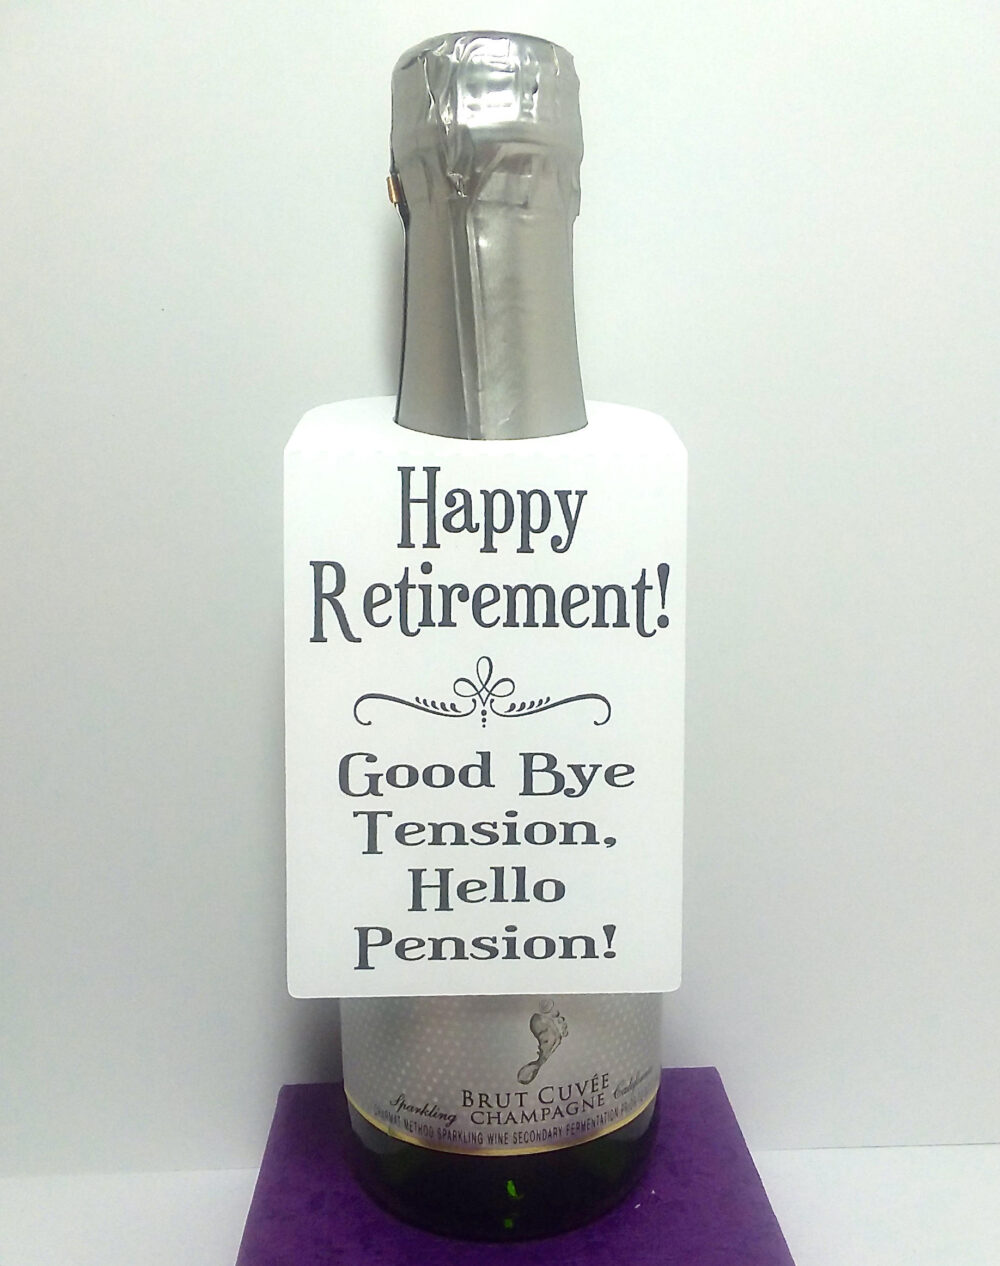 12 Happy Retirement Wine Bottle Hang Tags-Customizable-Wedding/Shower/Baby Shower/Retirement/Birthday/Holiday Gift/Personalized